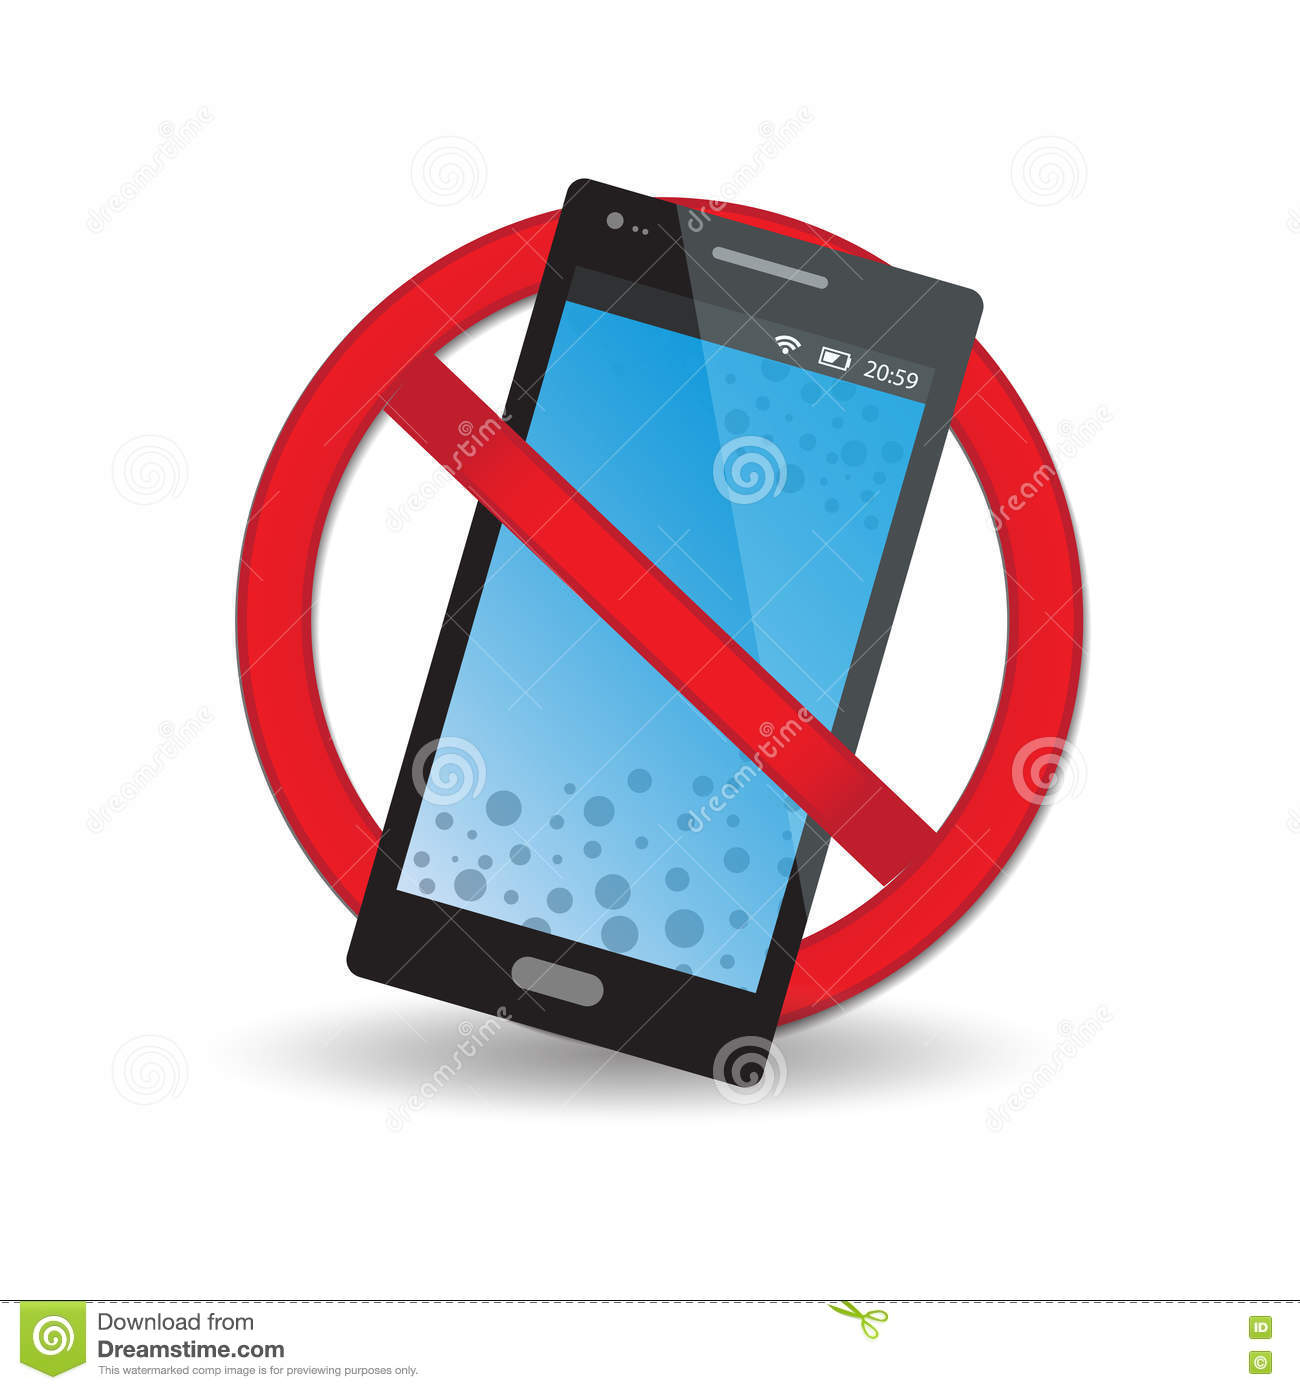 Do Not Disturb The Call Barring Icon Stock Vector